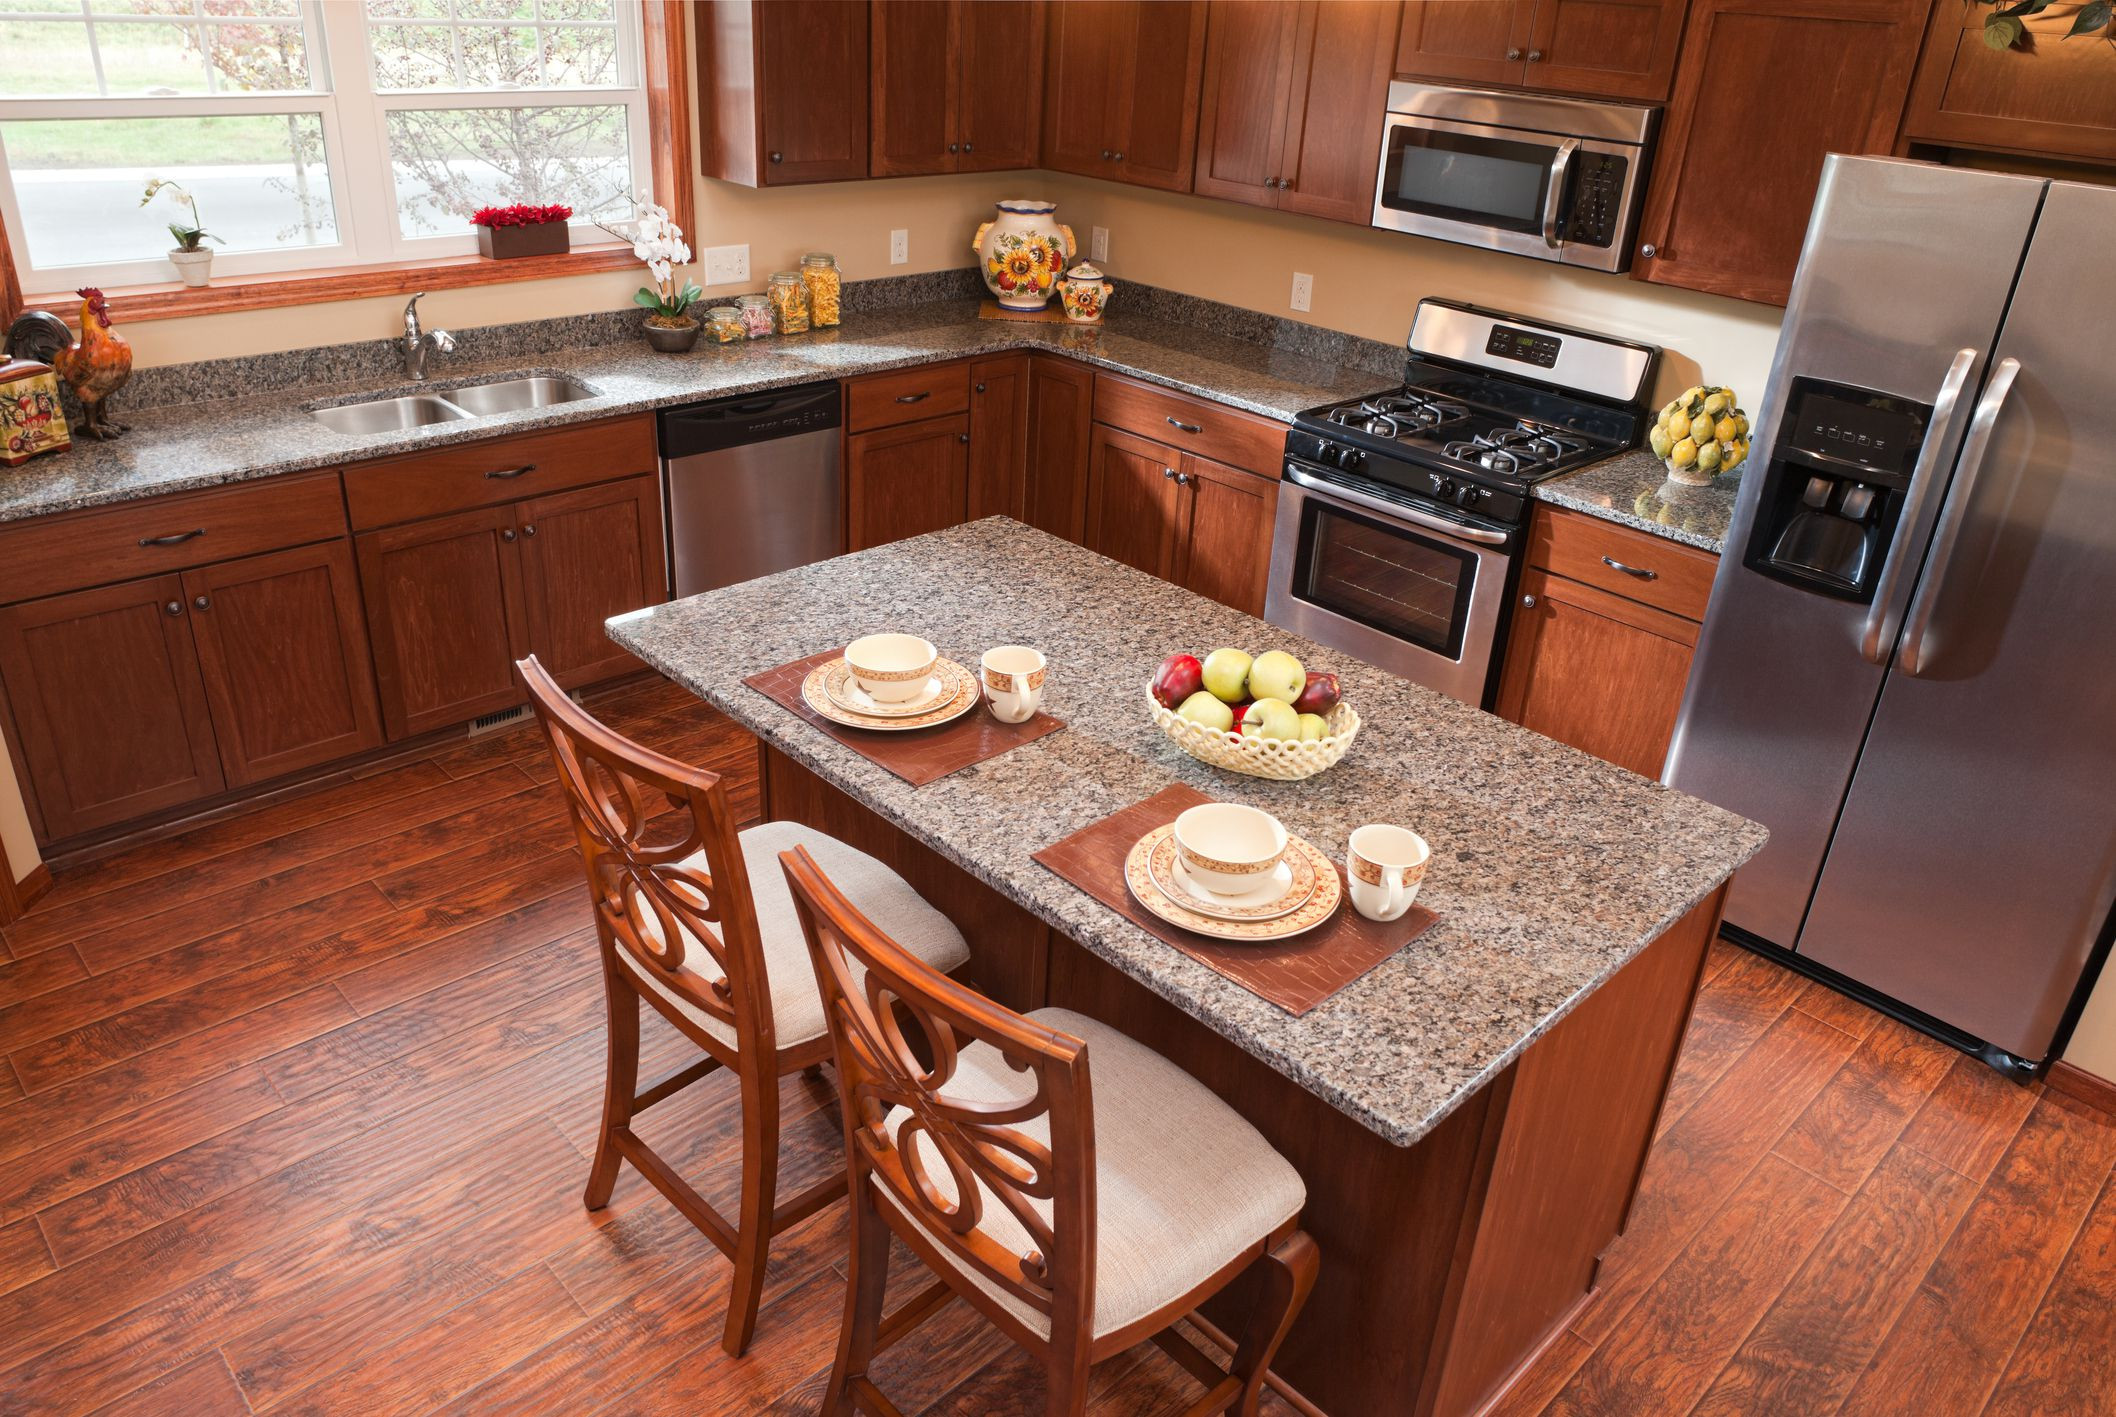 Kitchen Hardwood Floor Ideas Of Can You Install Laminate Flooring In the Kitchen Pertaining to Kitchen Laminate Floor Gettyimages 155098316 5895140c5f9b5874ee5f7711